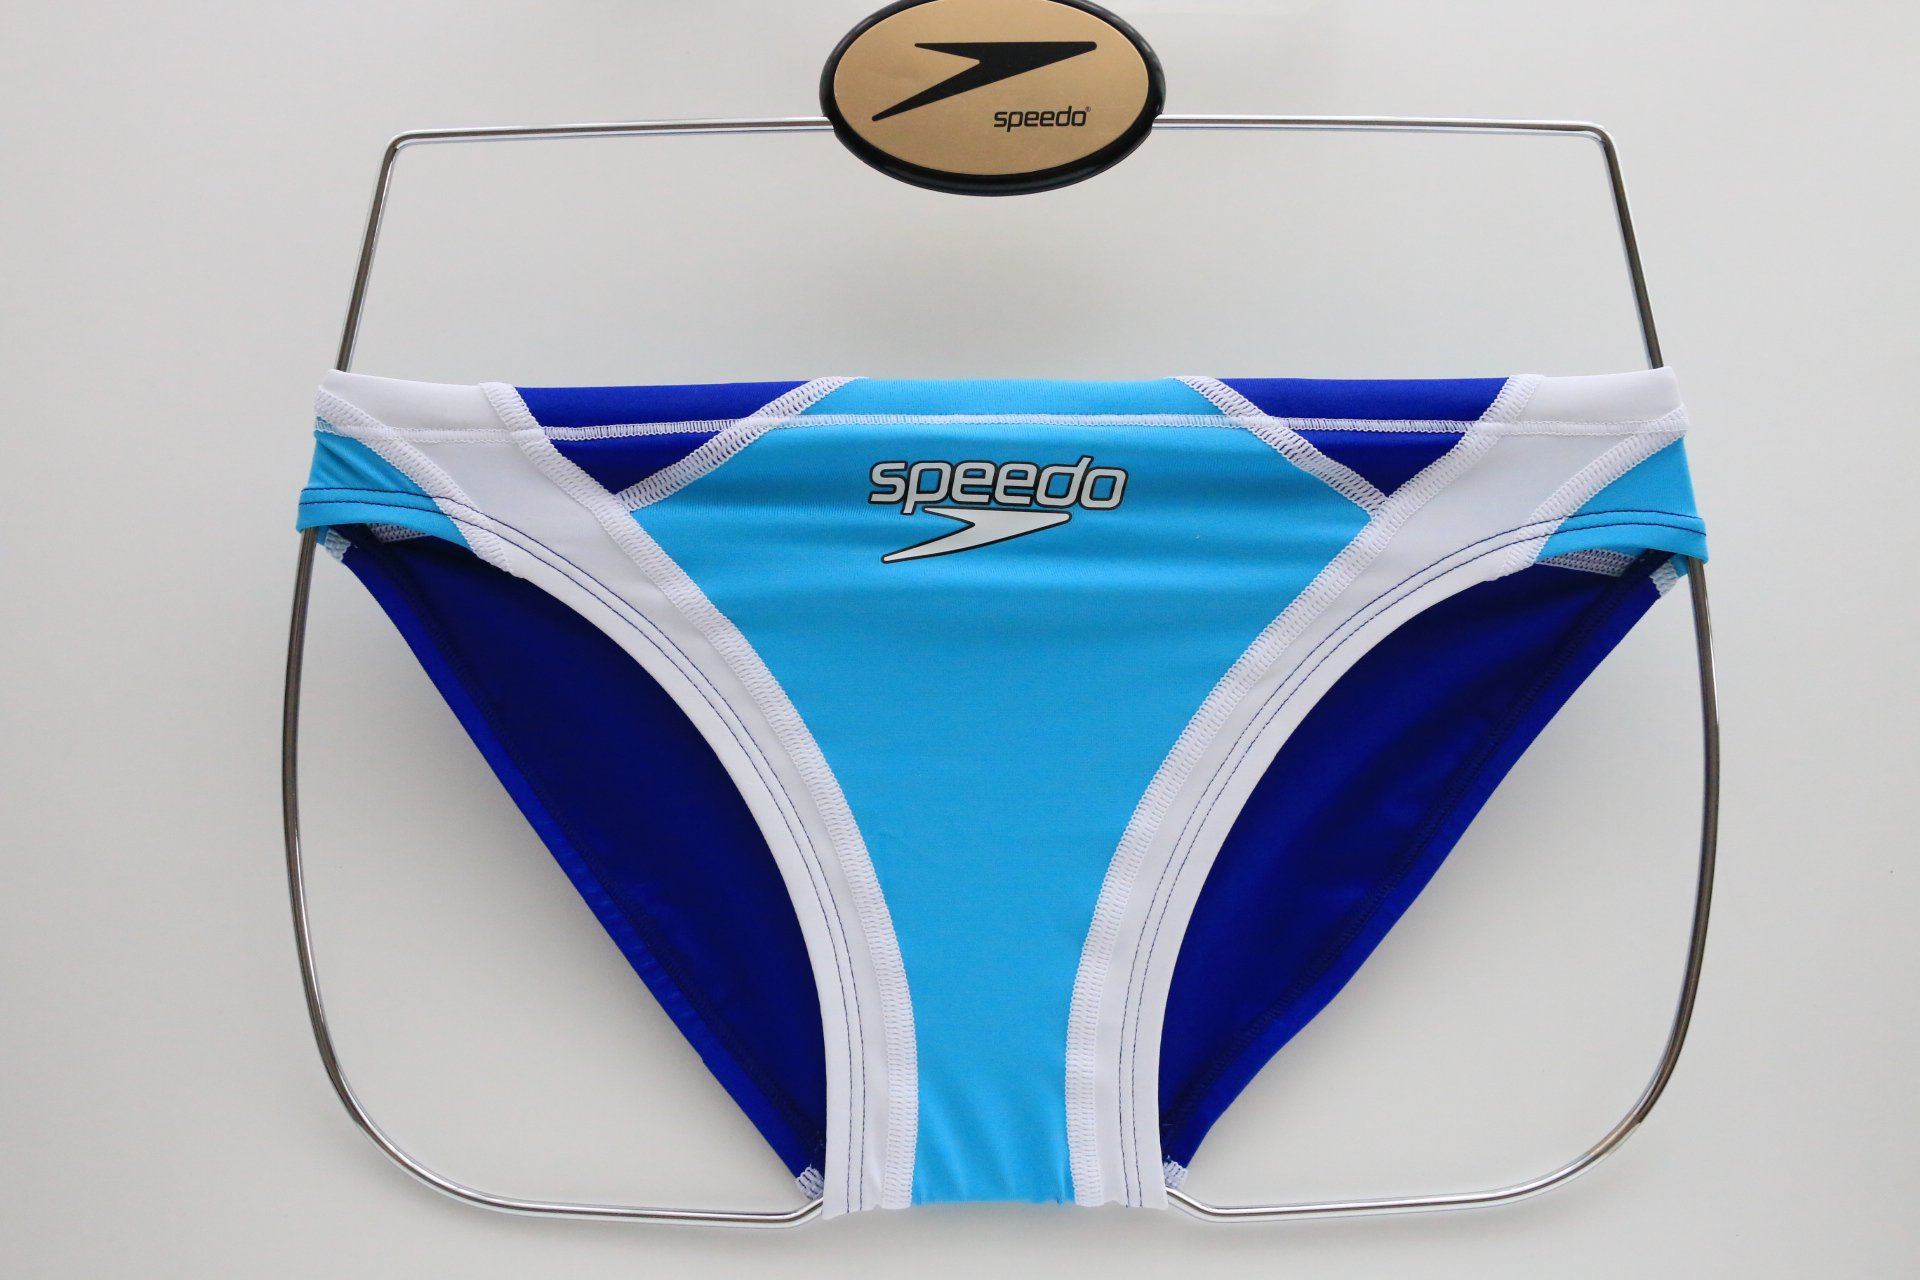 Bespoked Speedo Men's Competition Swimwear Fastskin-XT-W Bikini Brief